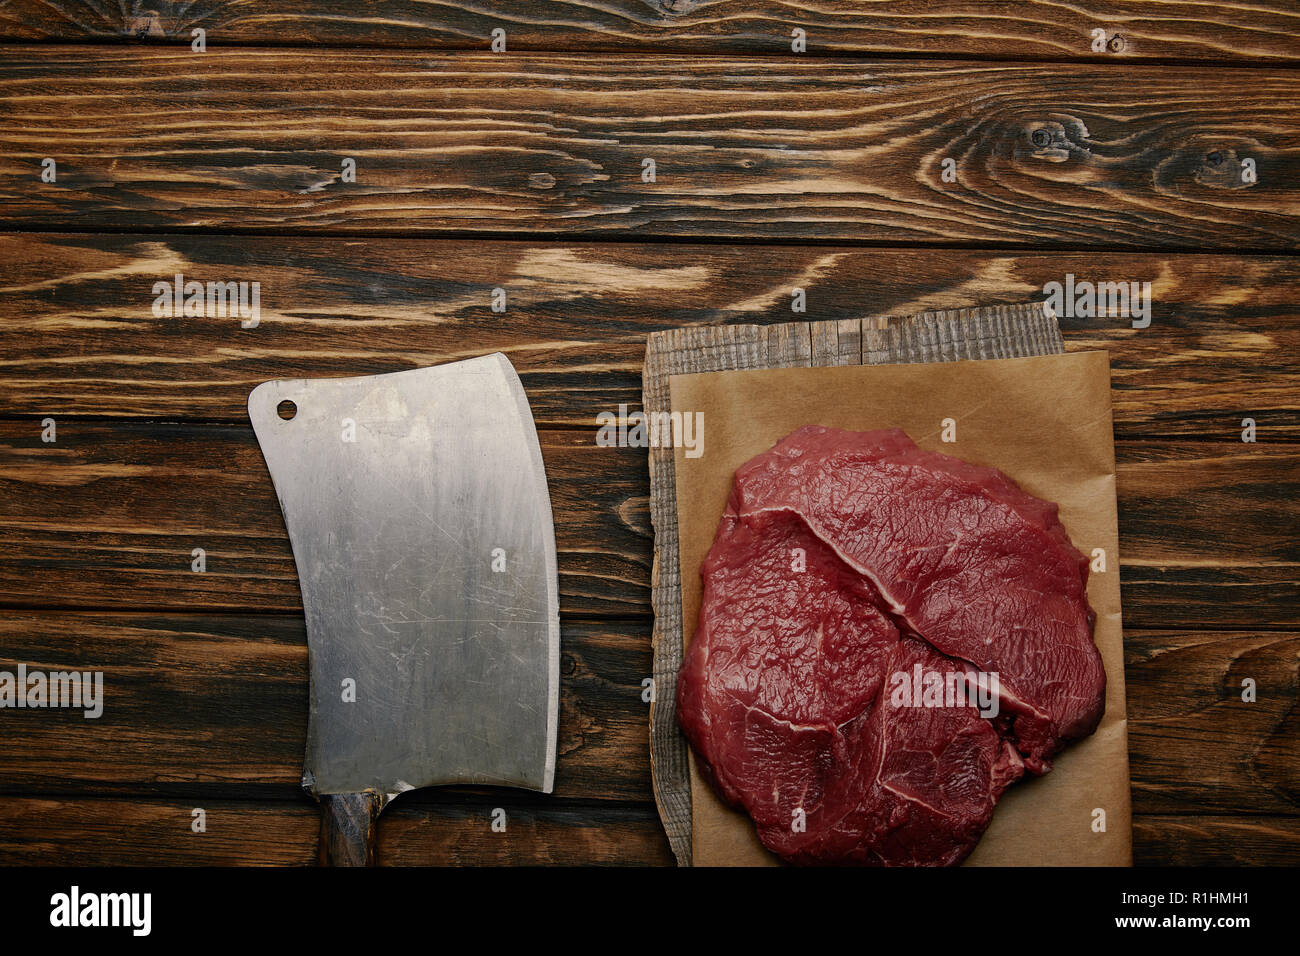 top view of raw meat on baking paper with butcher knife on wooden background Stock Photo